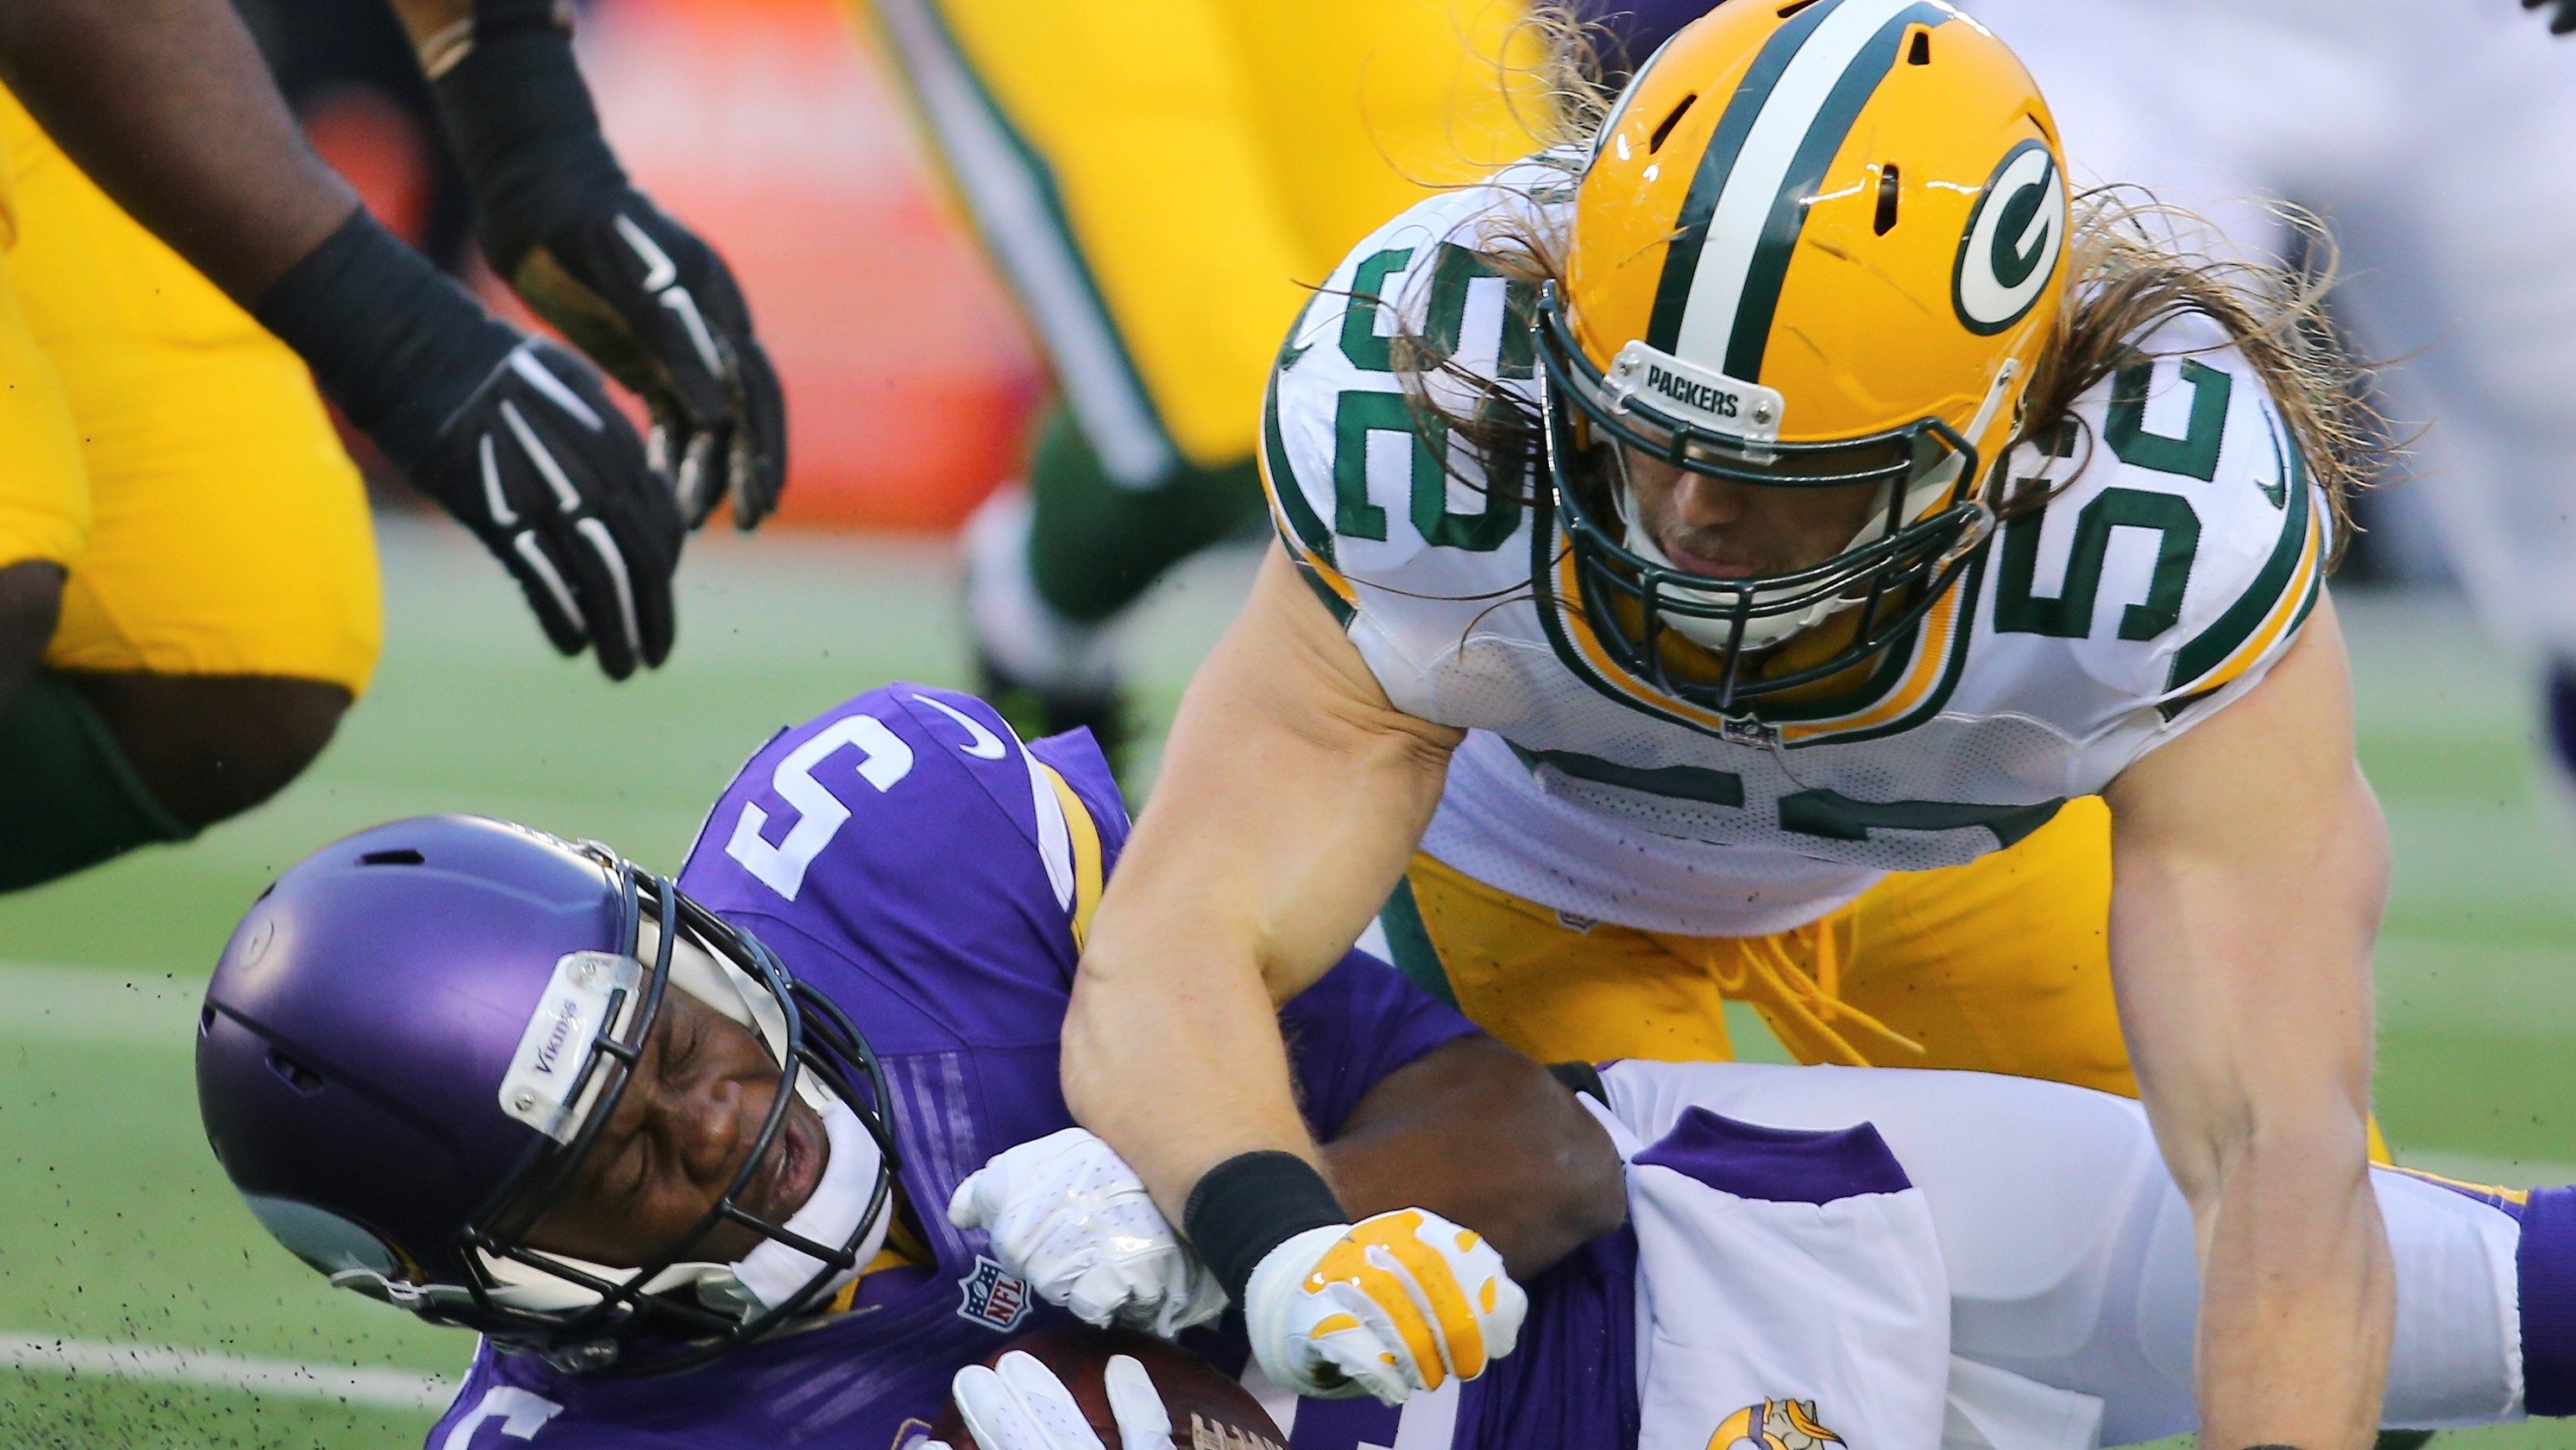 Packers vs vikings betting odds double chance soccer tips betting